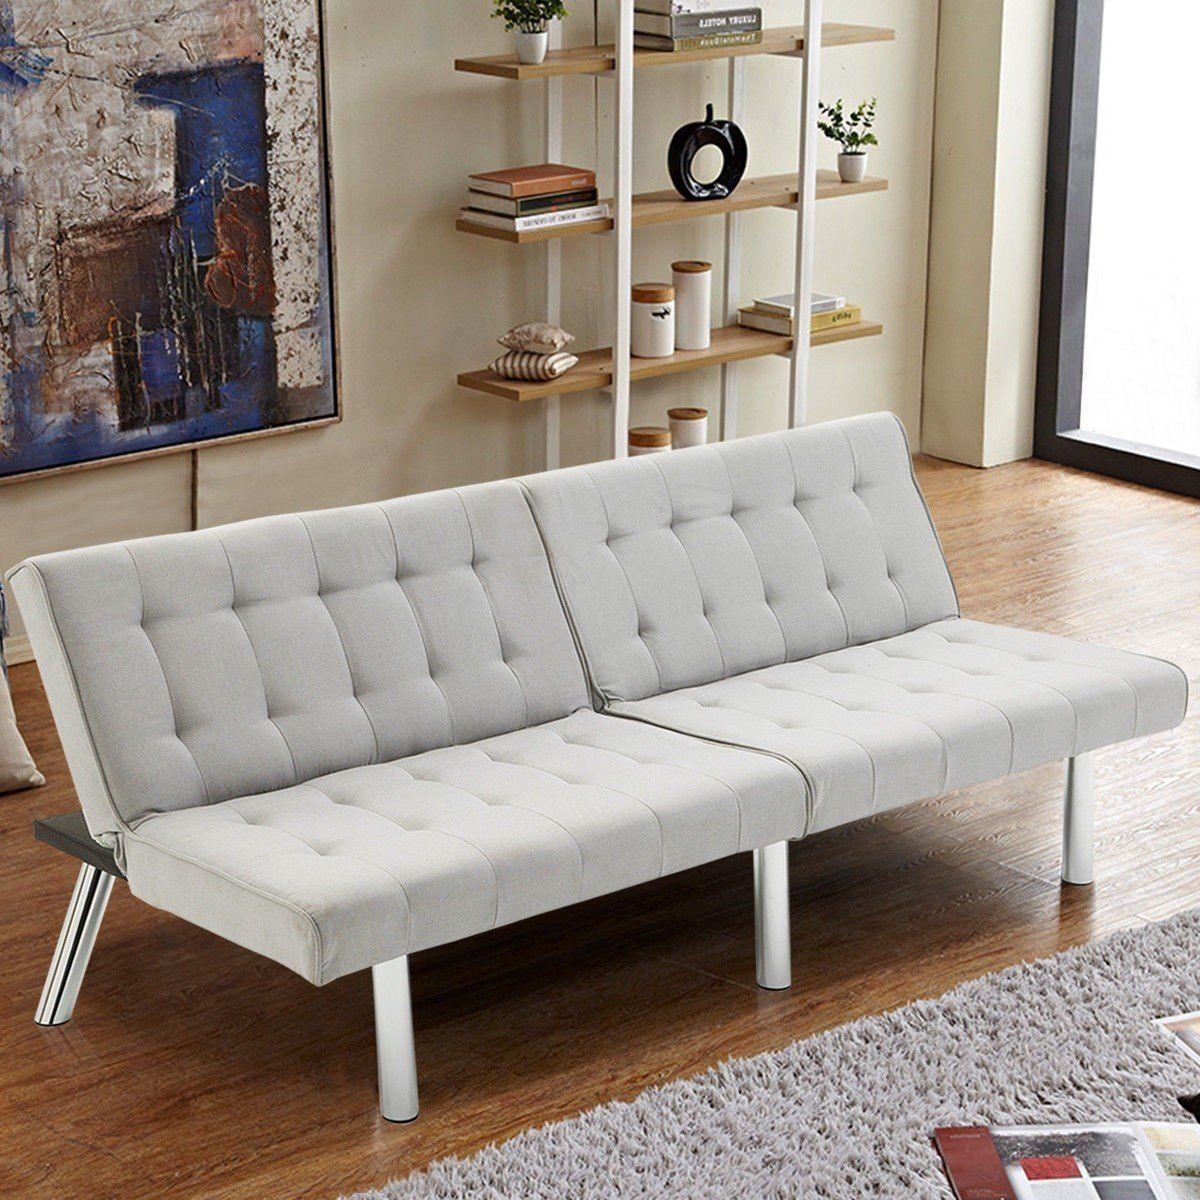 Split Back Futon Sofa Bed Convertible Couch By Choice Products Gray Read More